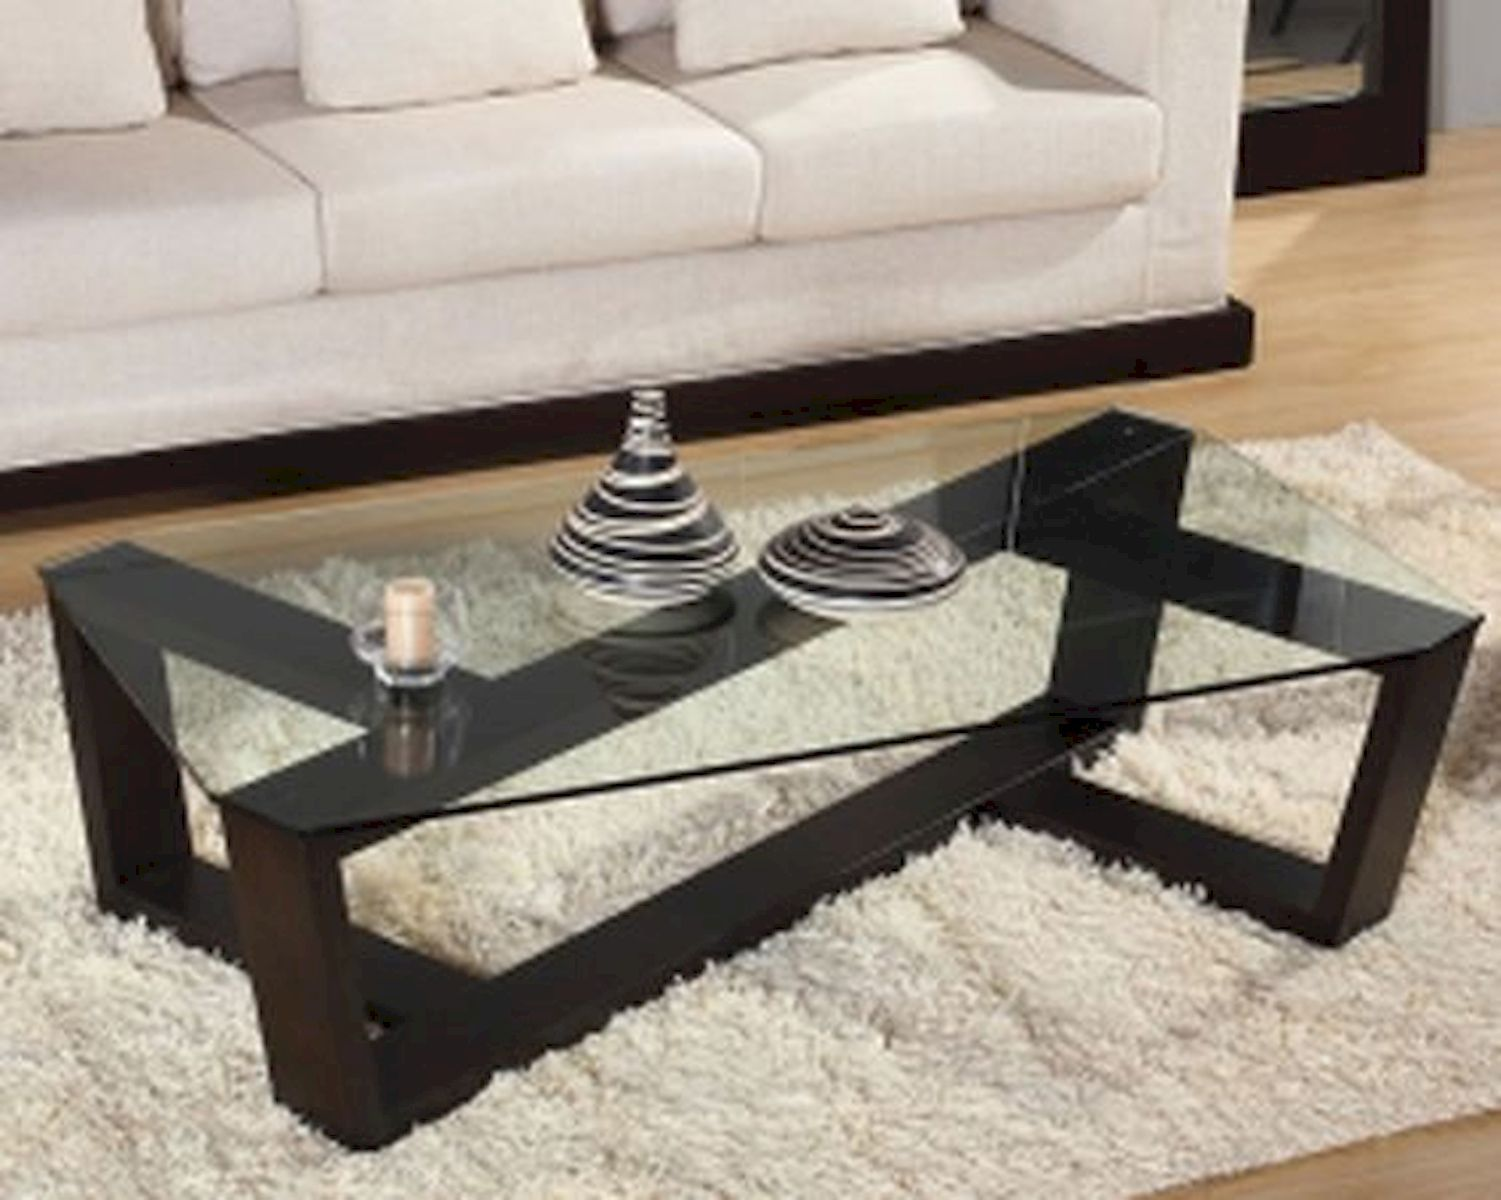 40 Awesome Modern Glass Coffee Table Design Ideas For Your Living Room Modern Glass Coffee Table Coffee Table Wood Glass Table Living Room #wood #center #table #for #living #room